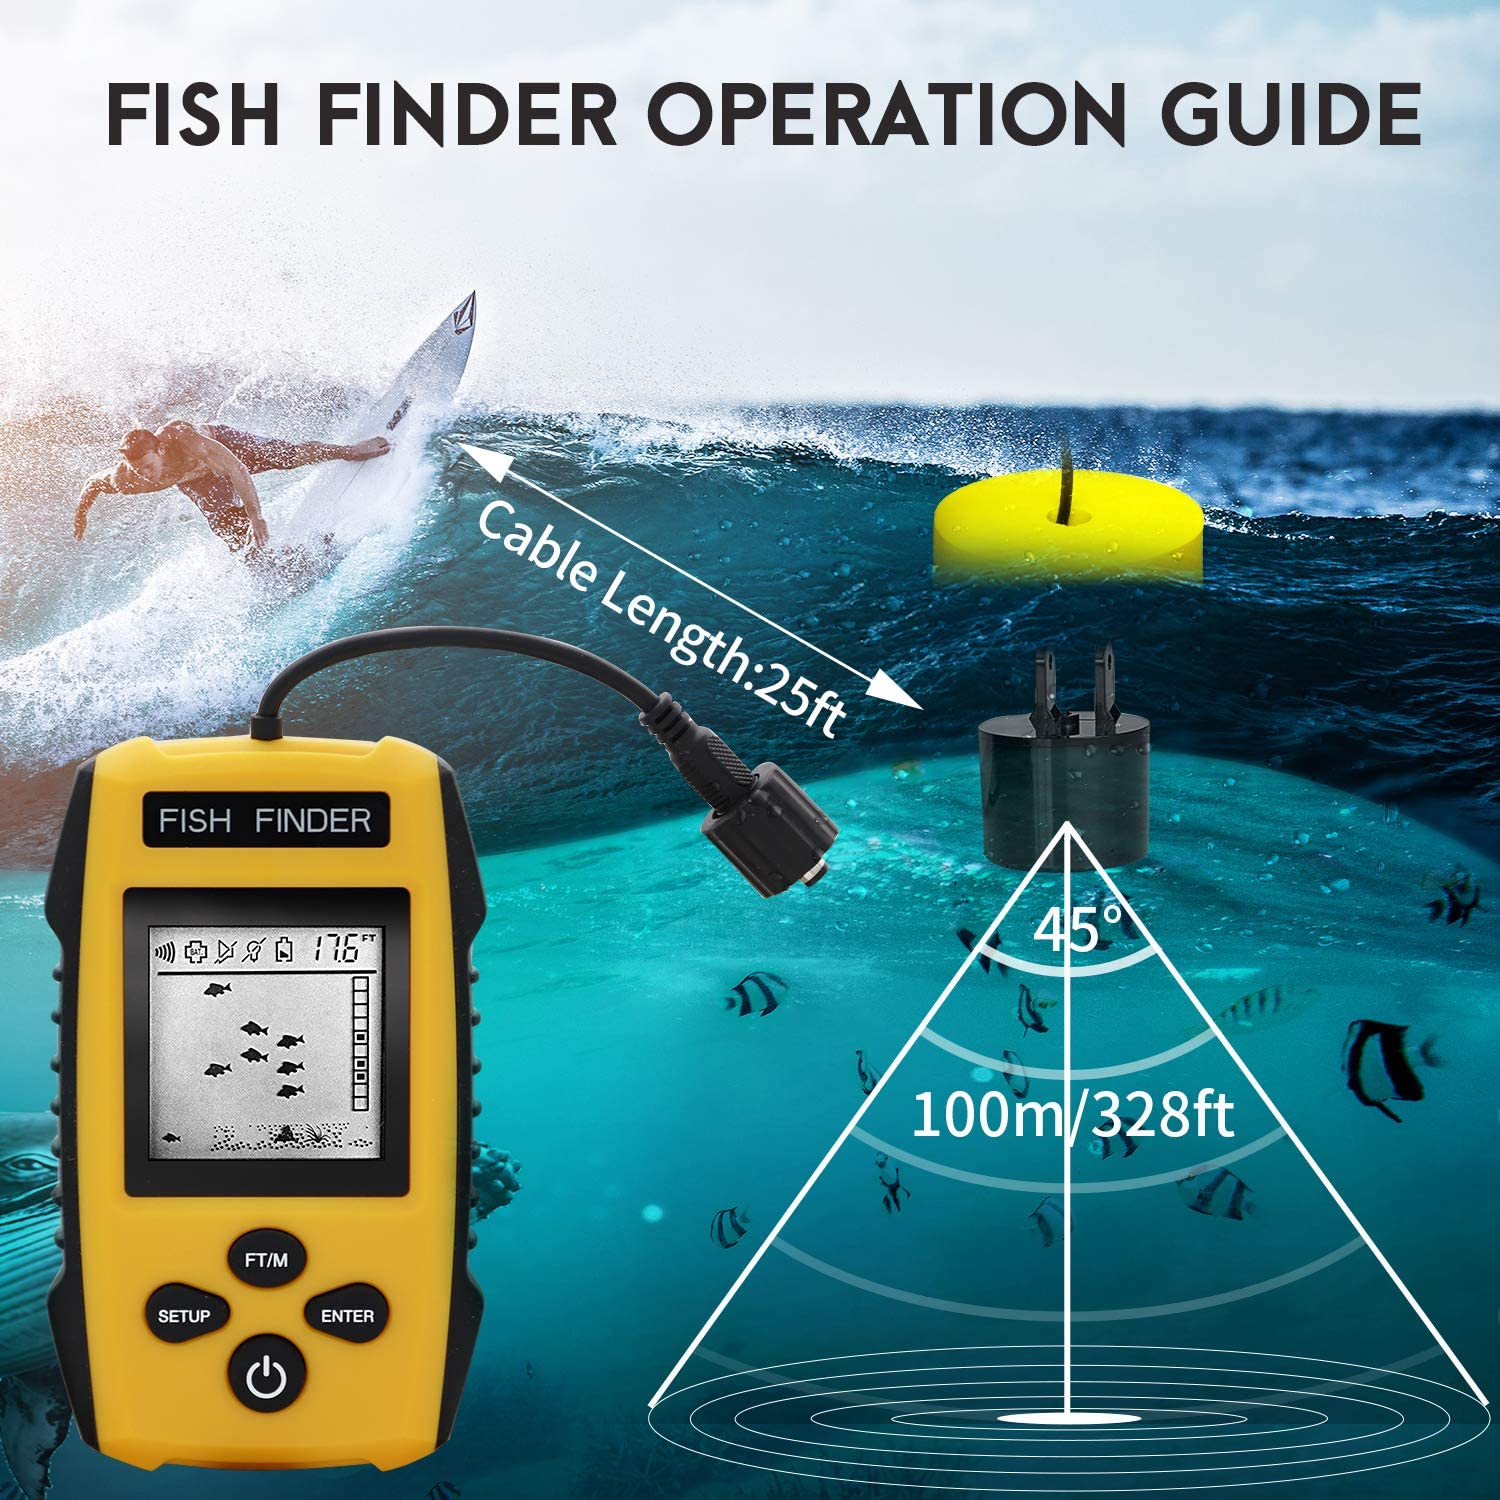 Contour Readout Handheld Fishfinder Depth readout 3ft to 328ft RICANK Portable Fish Finder with Sonar Sensor Transducer and LCD Display 5 Modes Sensitivity Options Fish Depth Finder Yellow 1m 100m